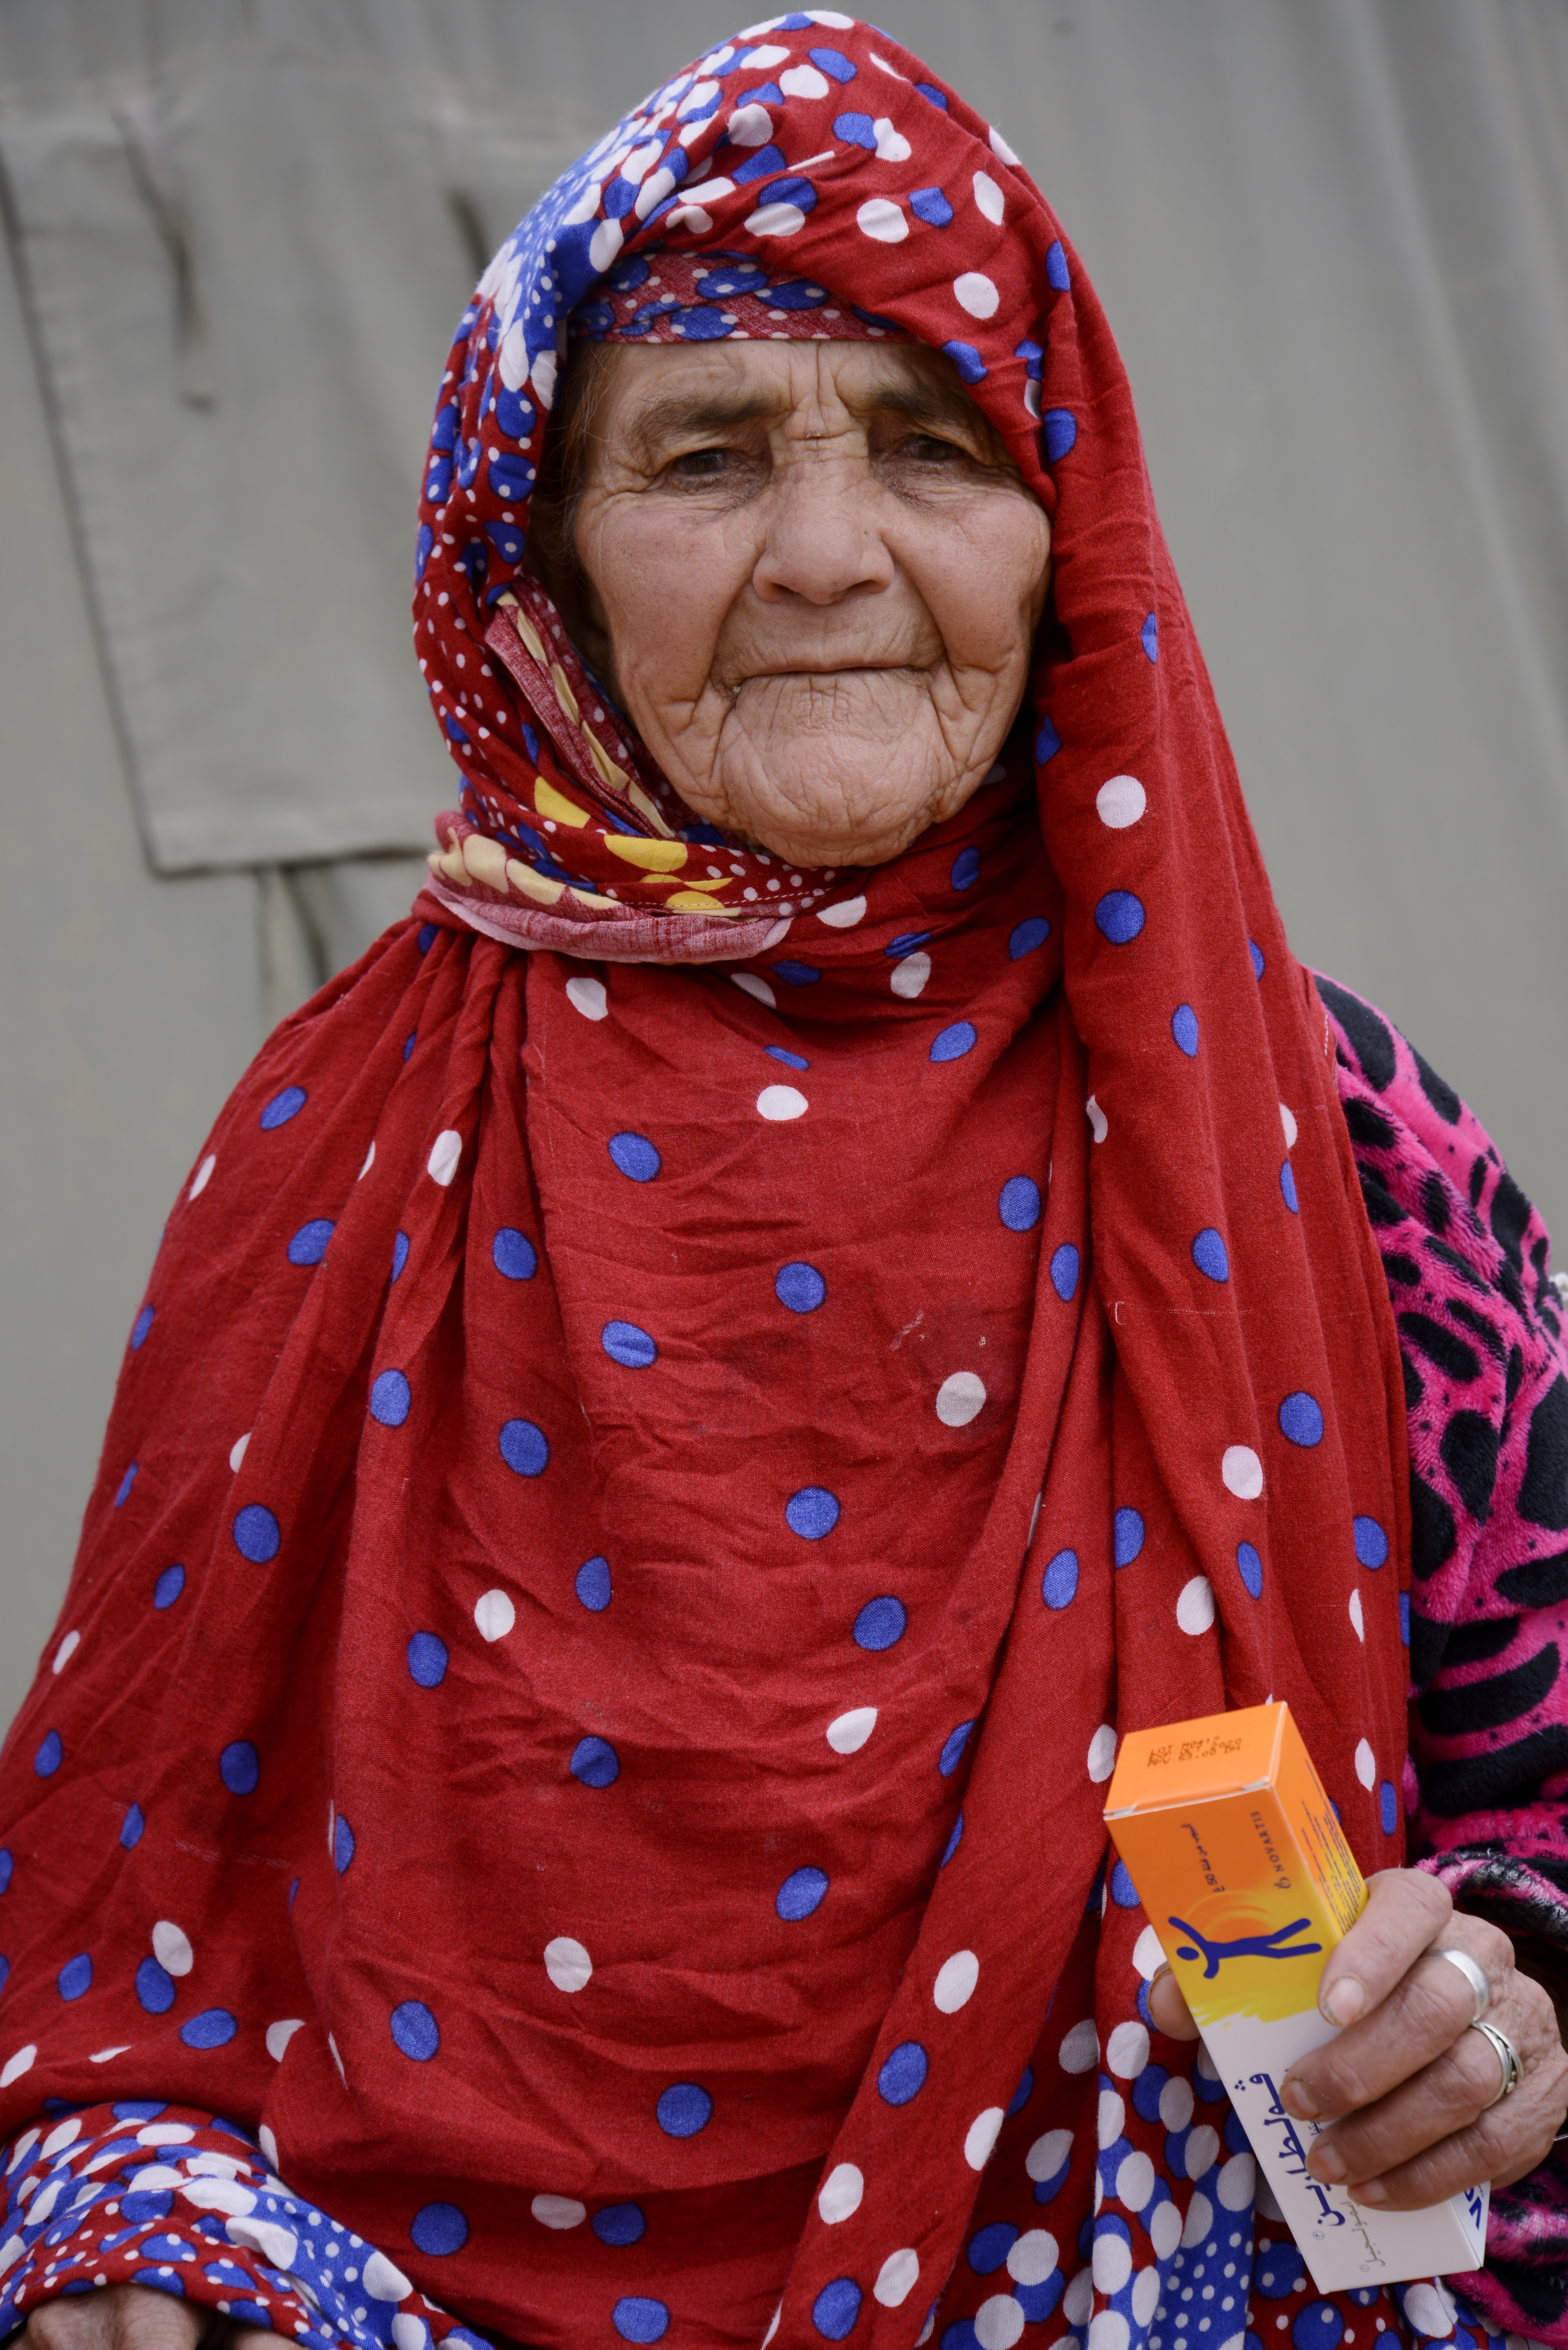 A Moroccan woman poses for a photo after receiving her medication from the pharmacy during the Humanitarian Civic Assistance component of Exercise African Lion 2018 in Bounaamane, Morocco, April 25, 2018.  Exercise African Lion 2018 is a Chairman of the Joint Chiefs of Staff-sponsored, U.S. African Command-scheduled, U.S. Marine Corps Forces Europe and Africa-led, joint and combined exercise conducted in the Kingdom of Morocco. African Lion offers an opportunity to improve interoperability and cooperation while demonstrating the strong military bond that exists between the participating nations. (U.S. Army National Guard photo by Maj. Samantha Madsen)